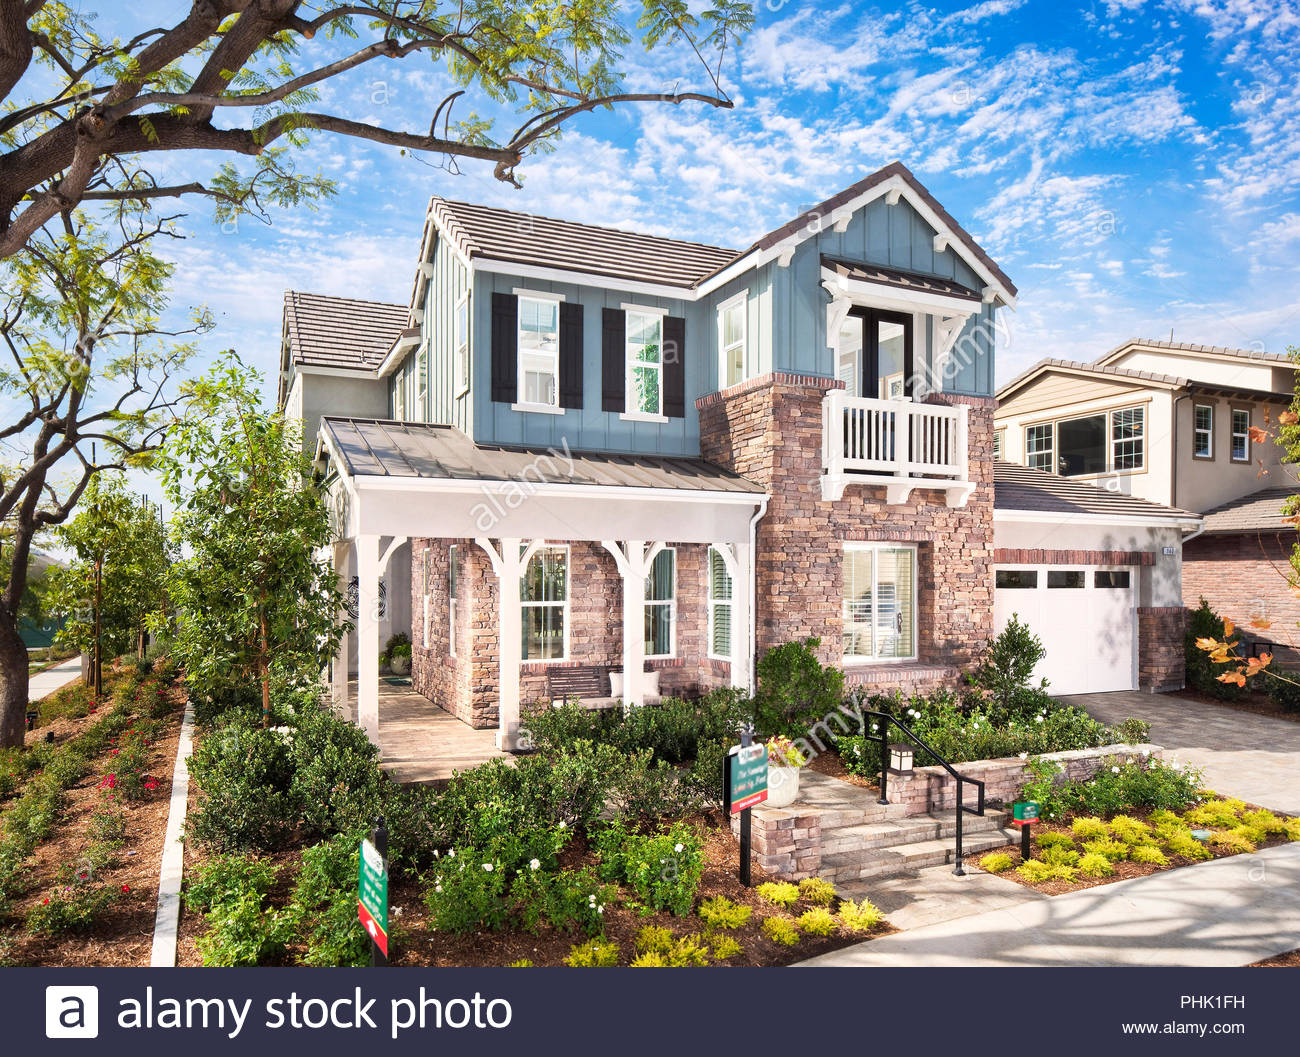 House and garden exterior - Stock Image